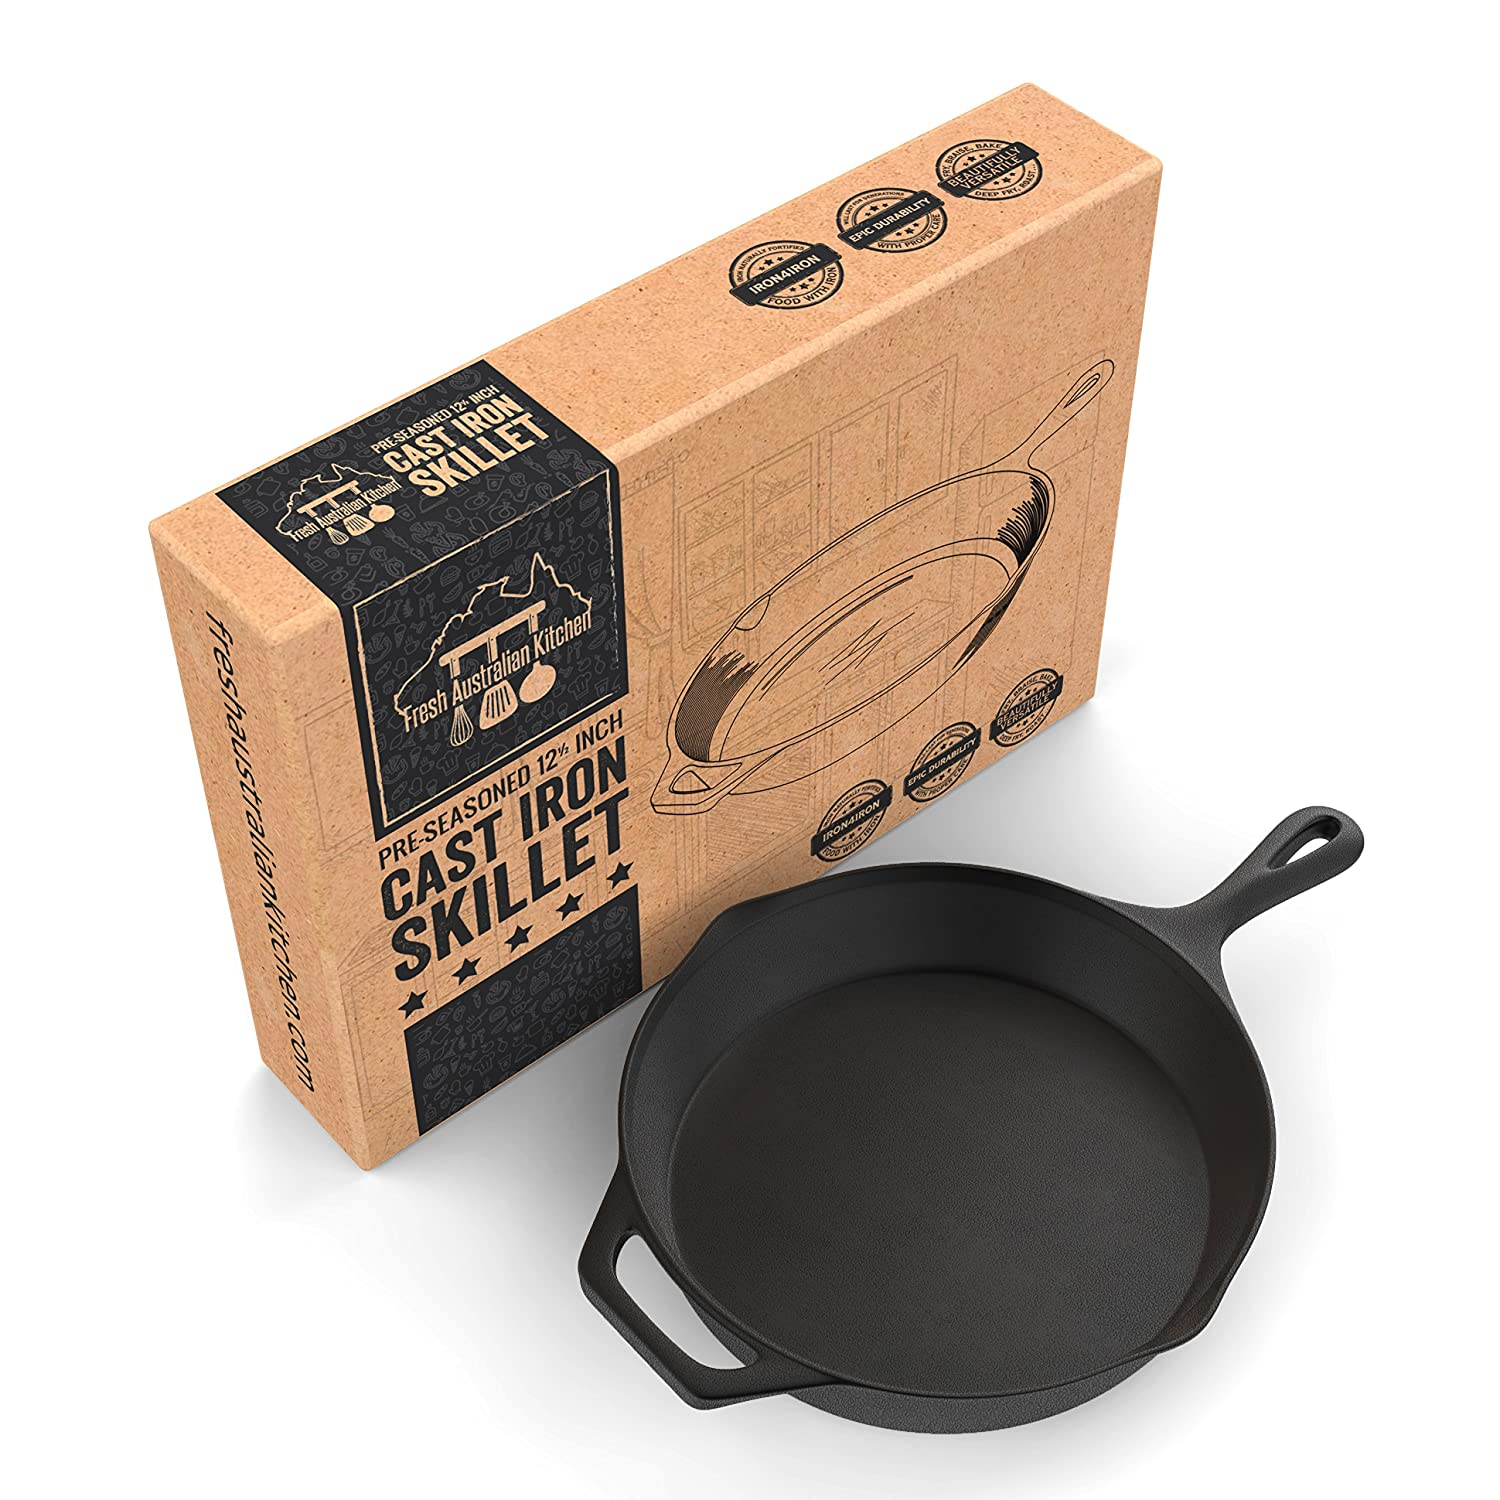 Pre-Seasoned Cast Iron Skillet 12.5 Inch by Fresh Australian Kitchen. Oven Safe Cookware, Perfect Camping, Indoors and Outdoor Pan.